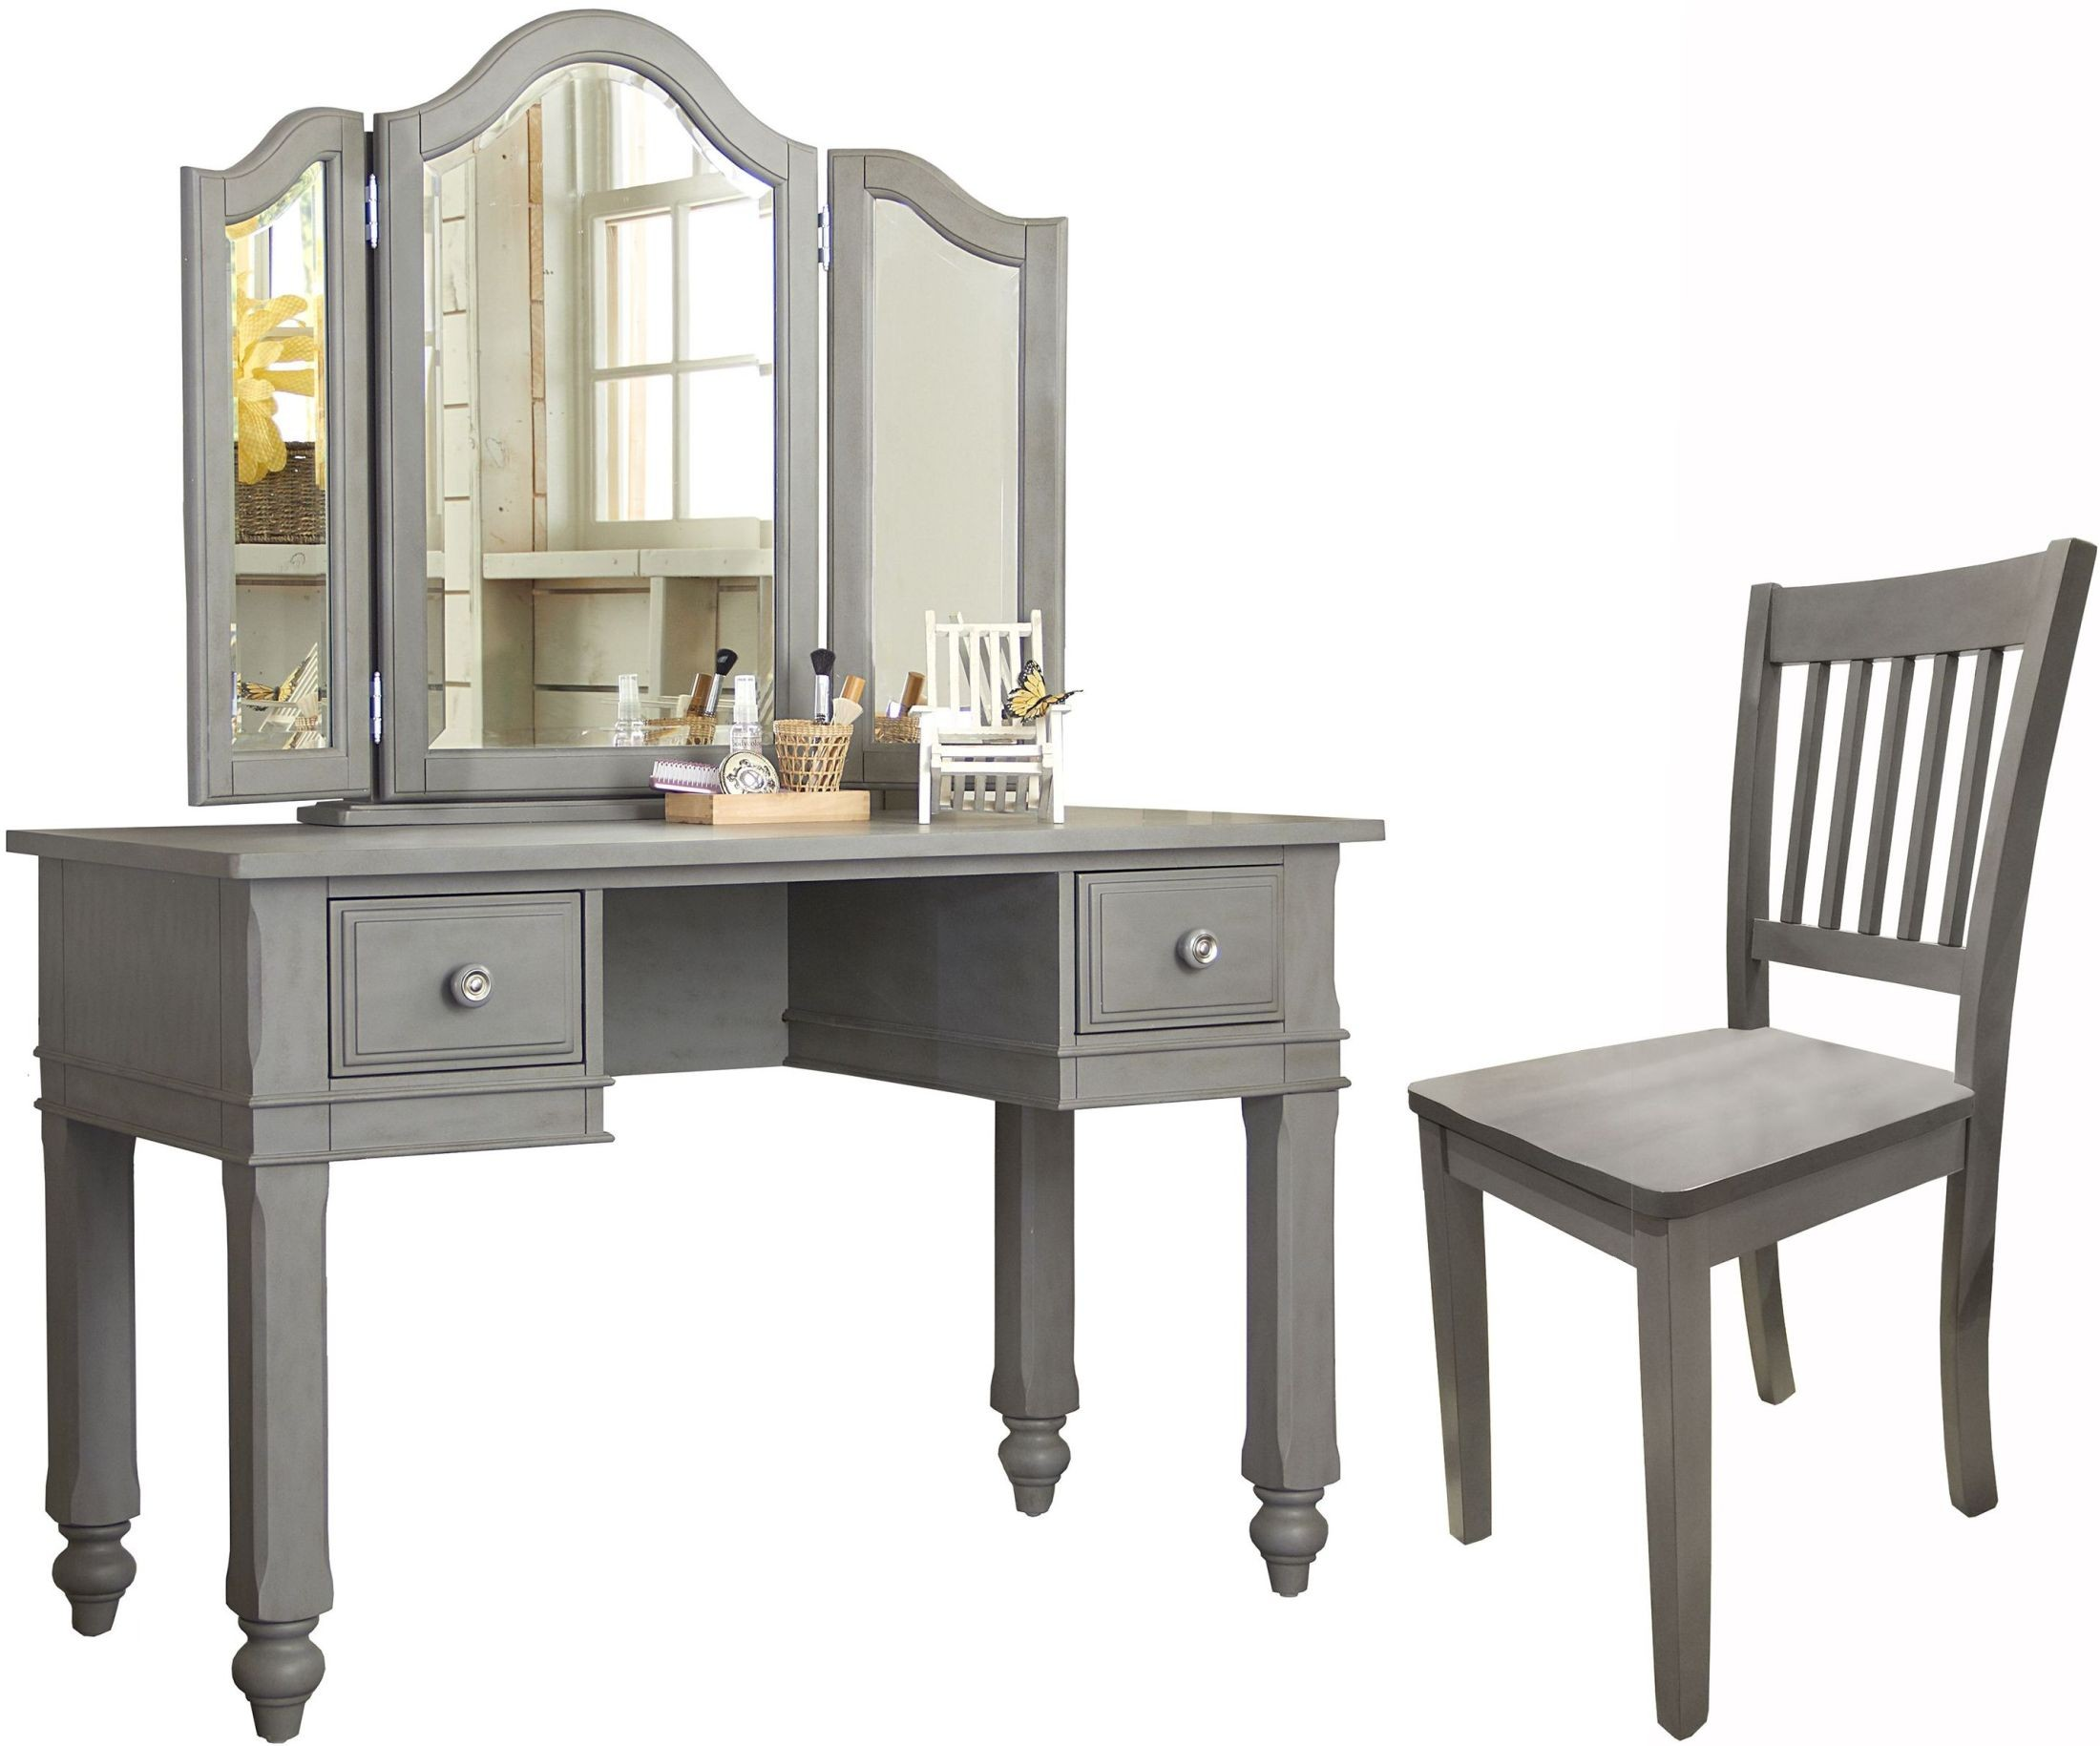 vanity with chair and mirror booster seat for 4 year old lake house stone writing desk